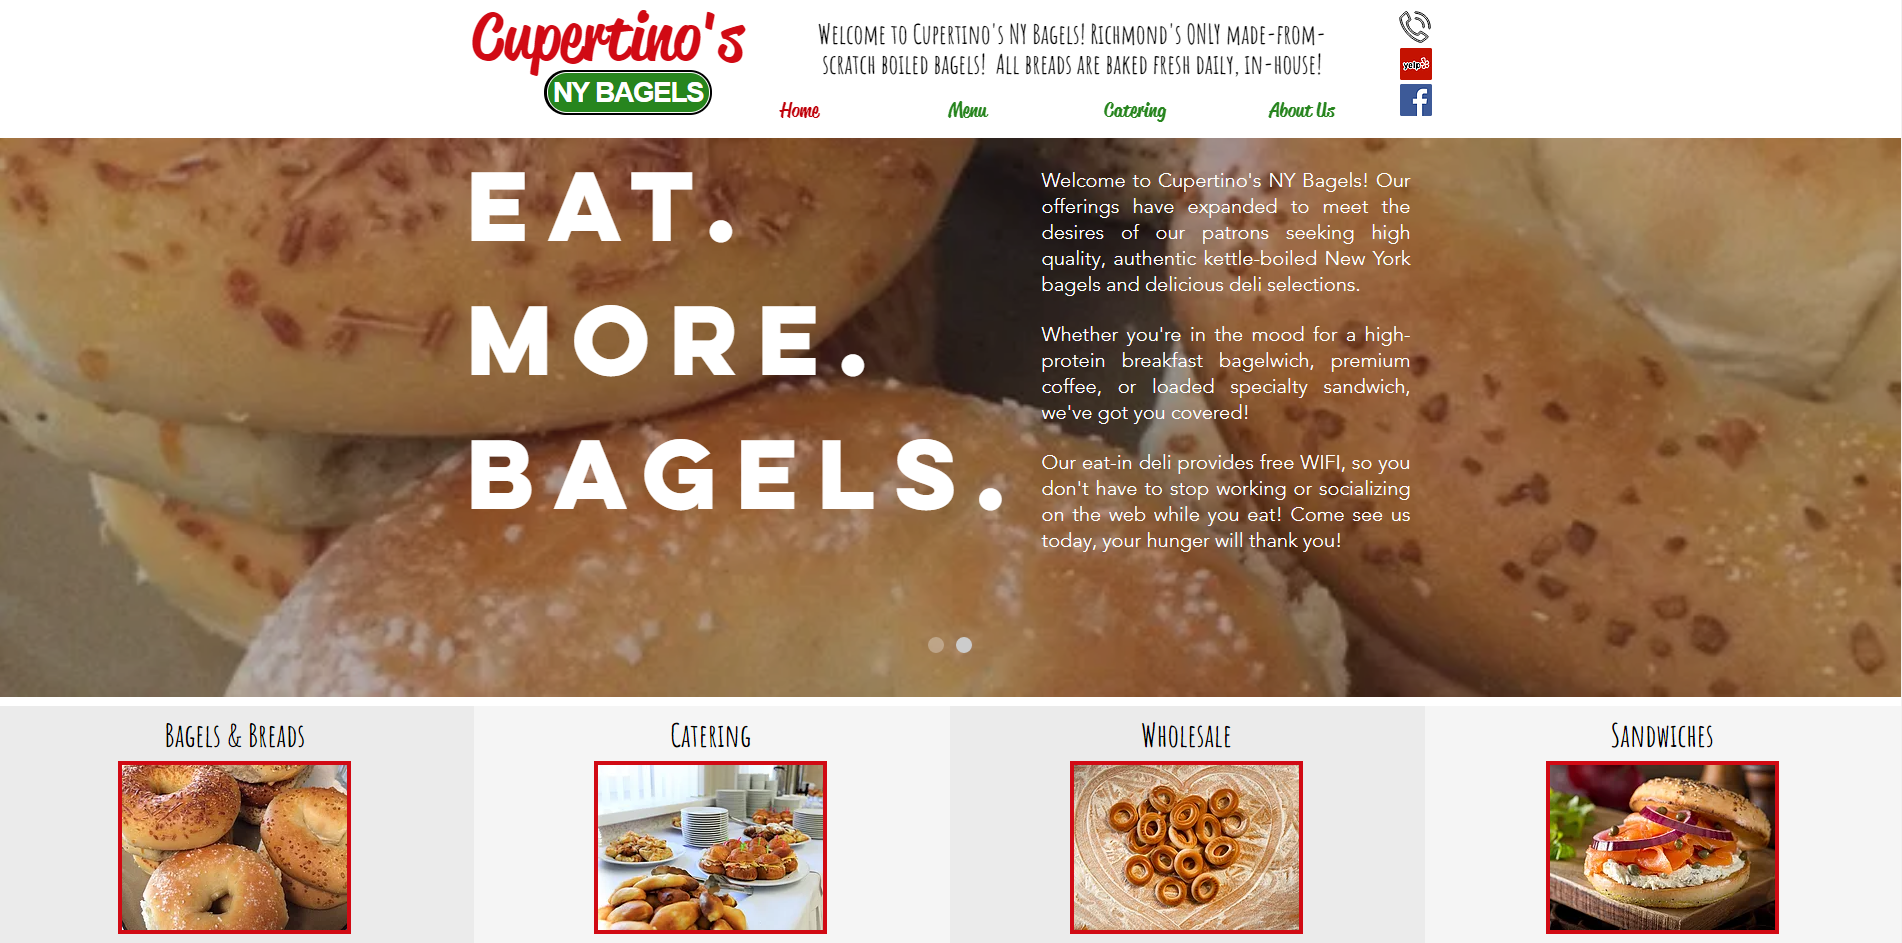 Cupertino's NY Bagels Website